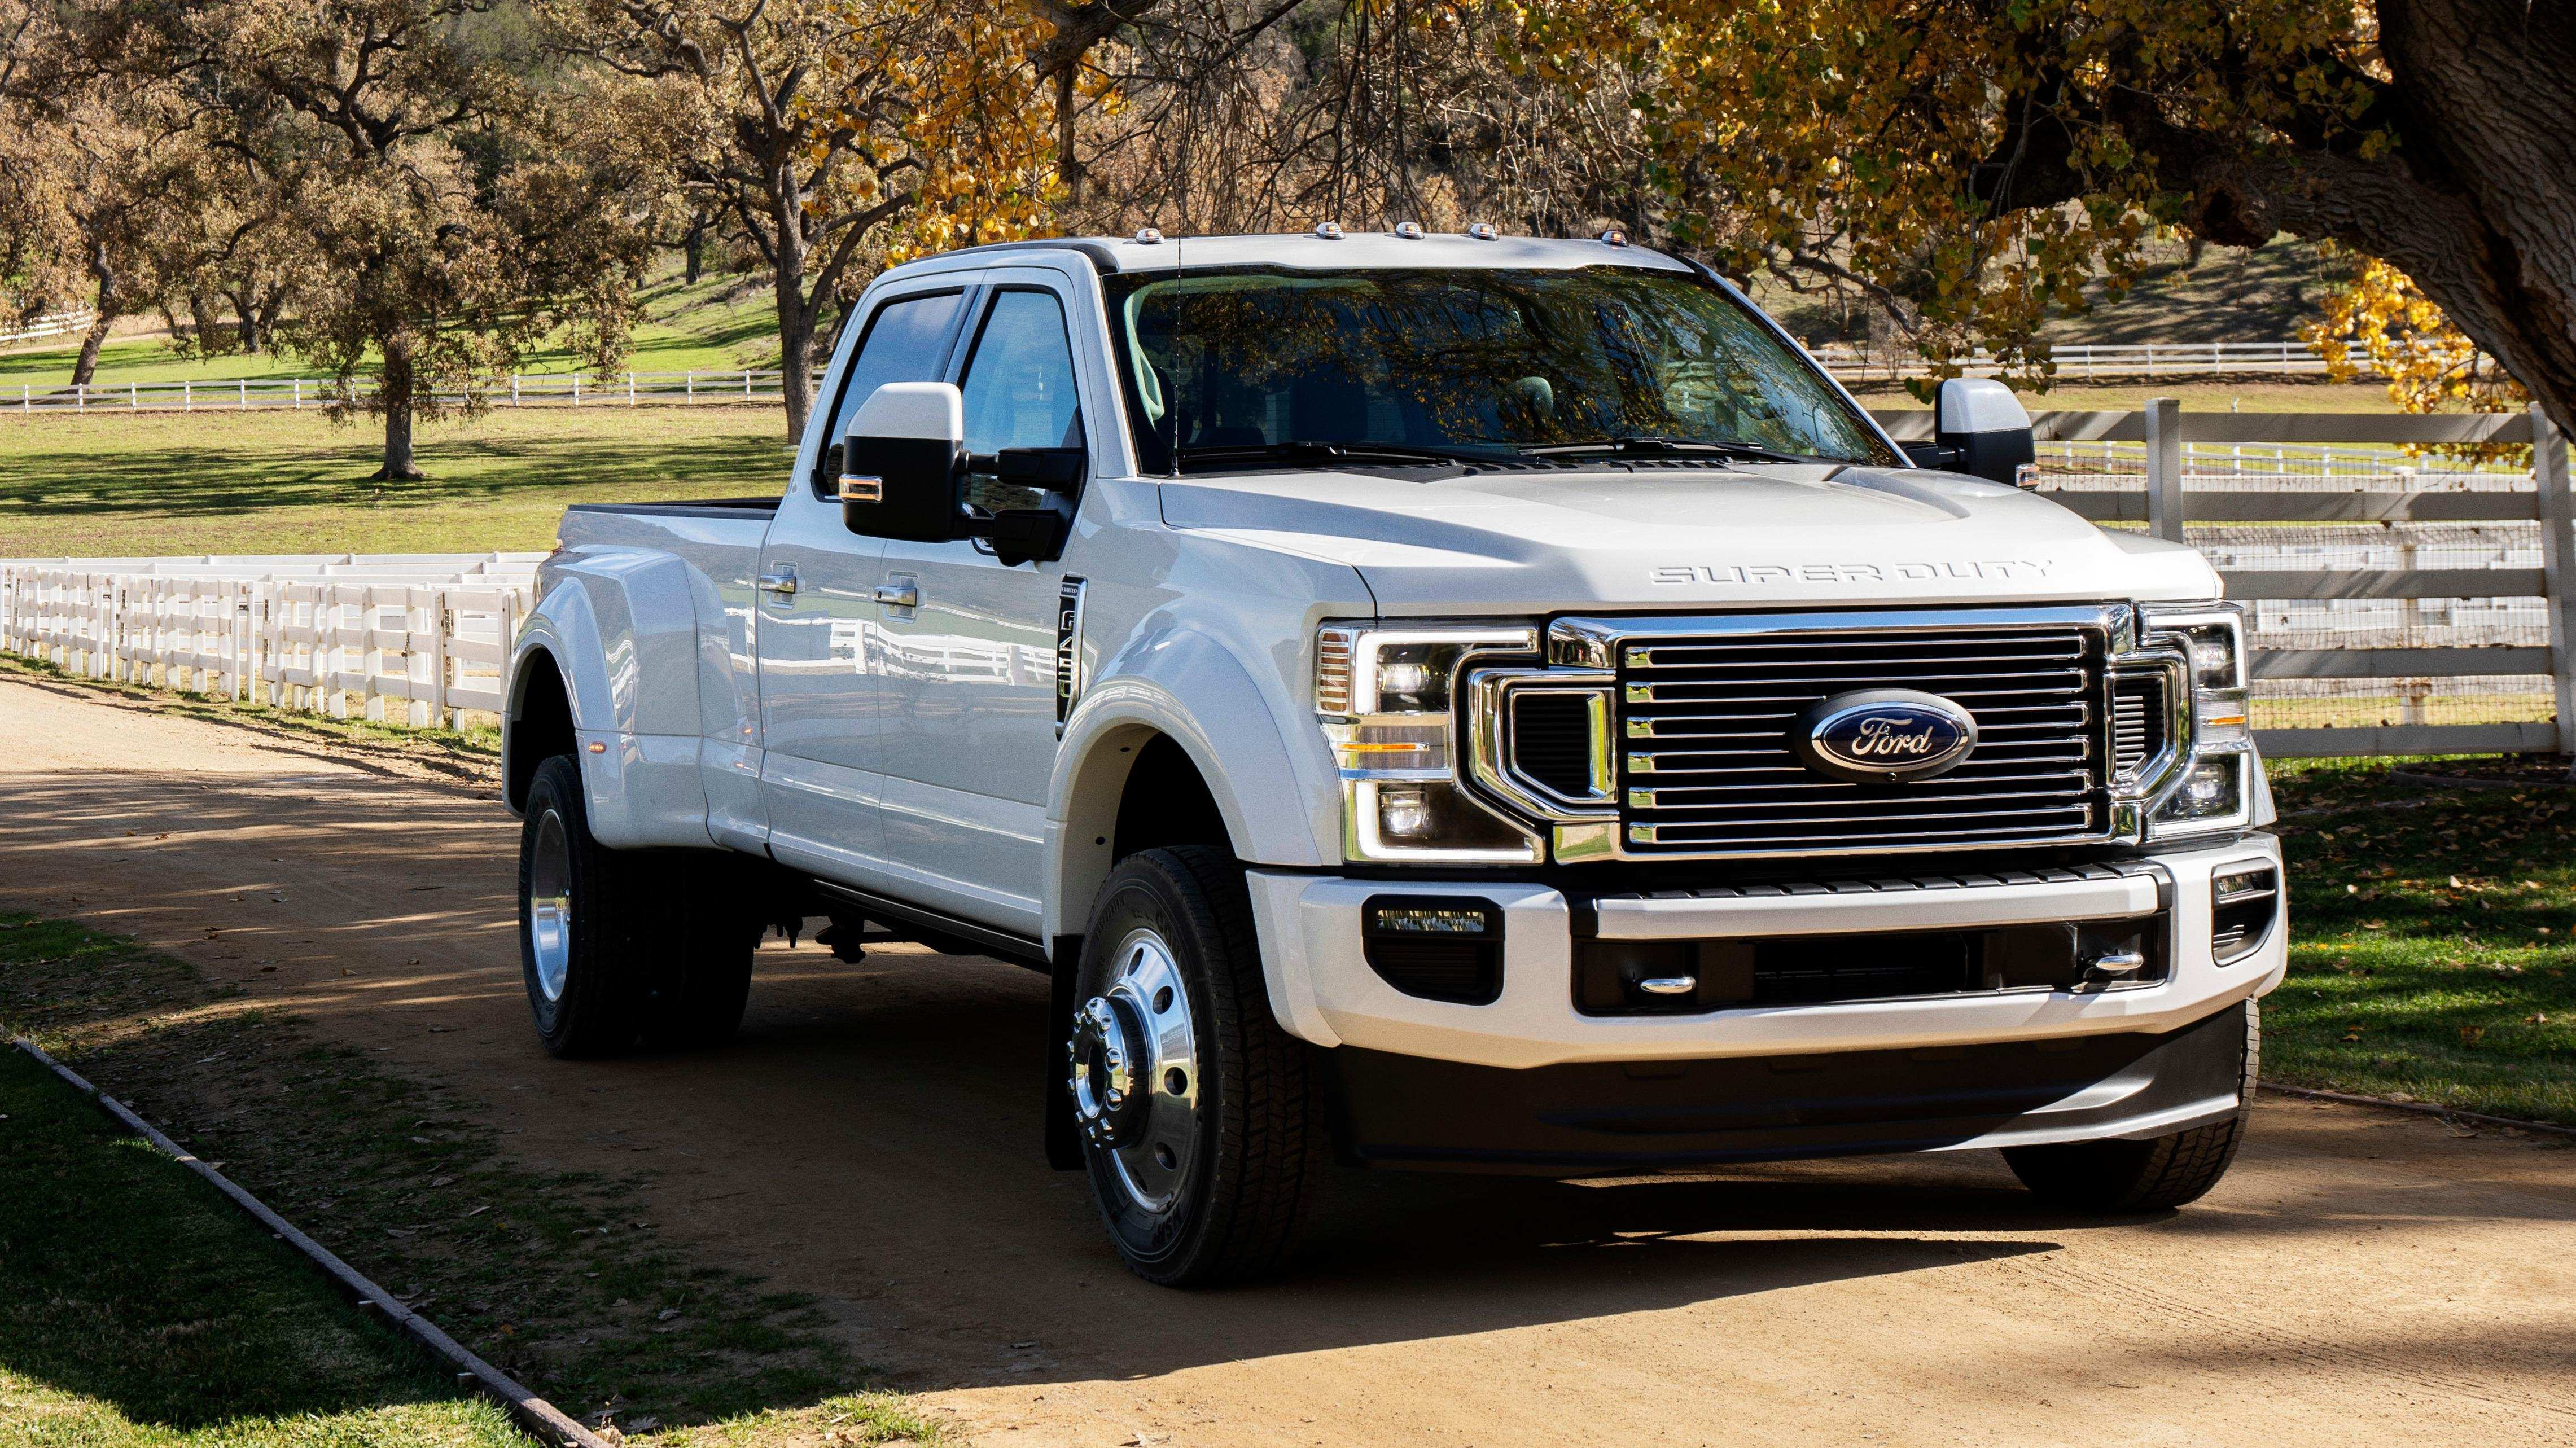 95 A Ford Limited 2020 Price